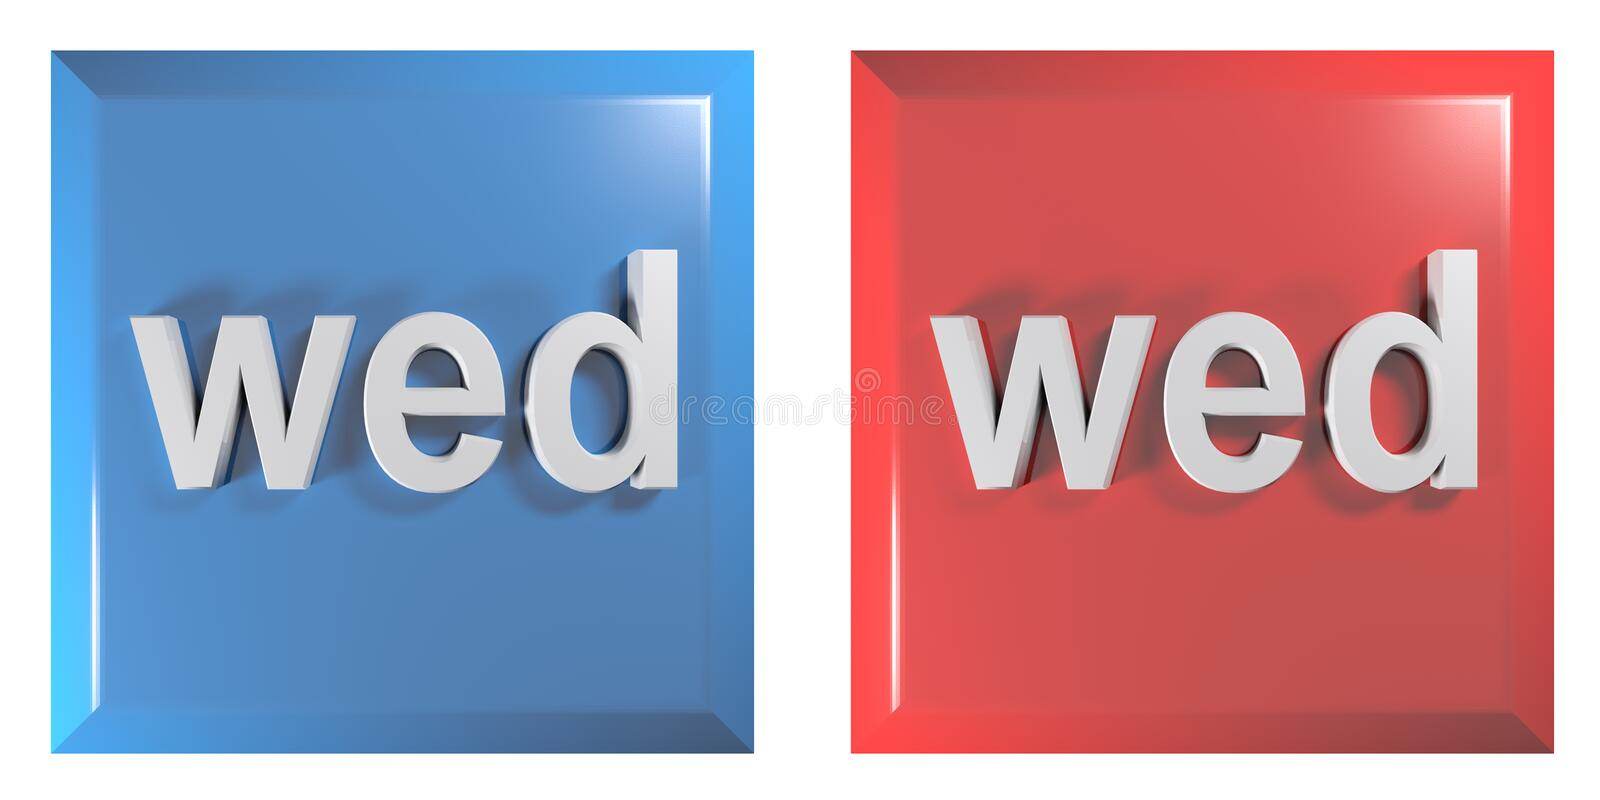 Blue and red couple of square push buttons WEDNESDAY - 3D rendering illustration. A couple of square push buttons, blue and red, isolated on white background royalty free illustration